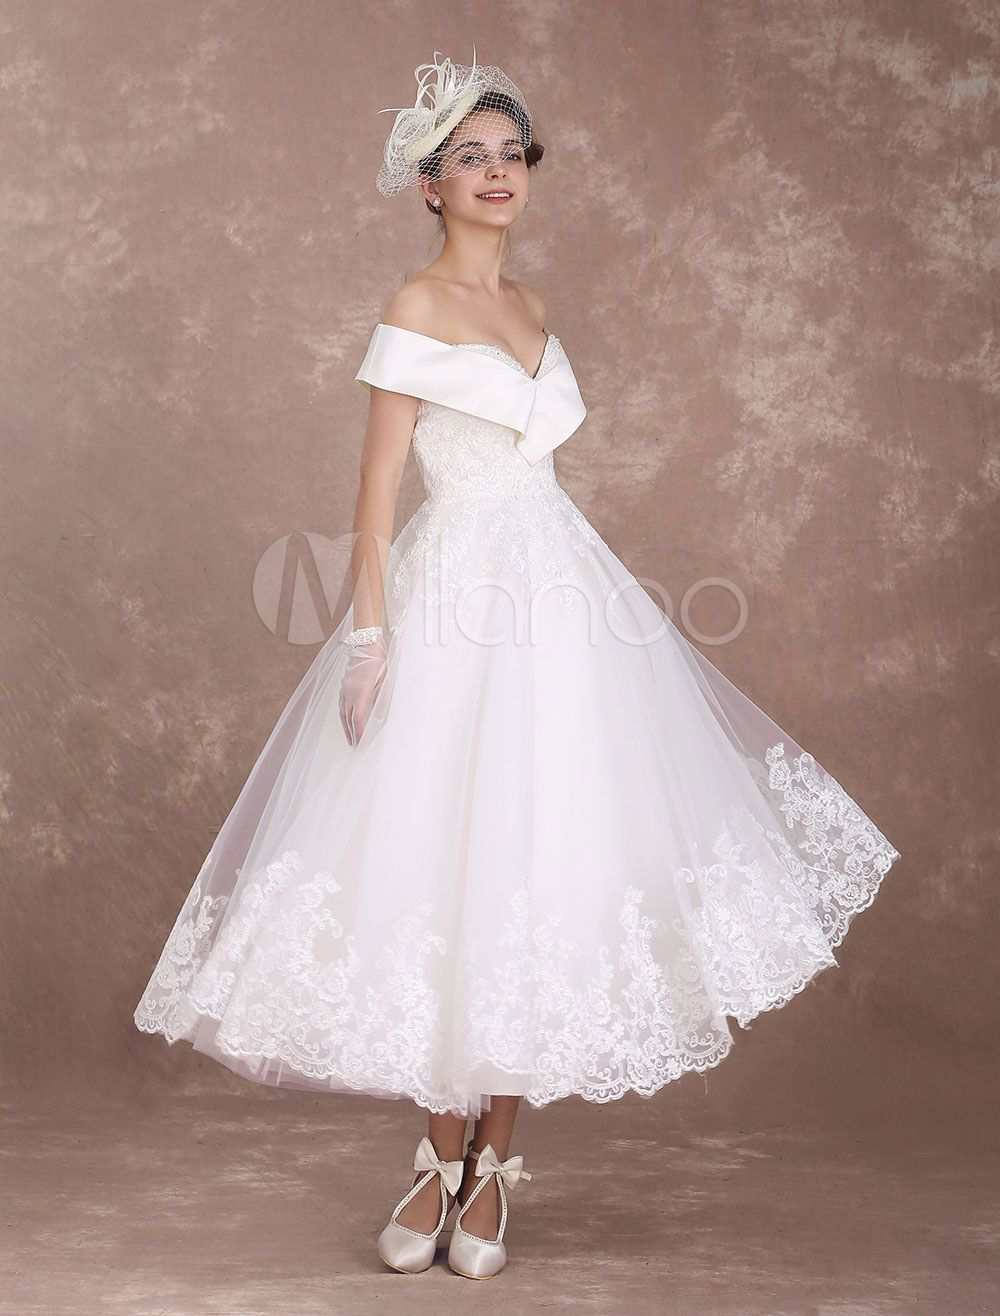 Off the shoulder tea length wedding dress  Vintage Wedding Dresses Off The Shoulder Short Bridal Dress us